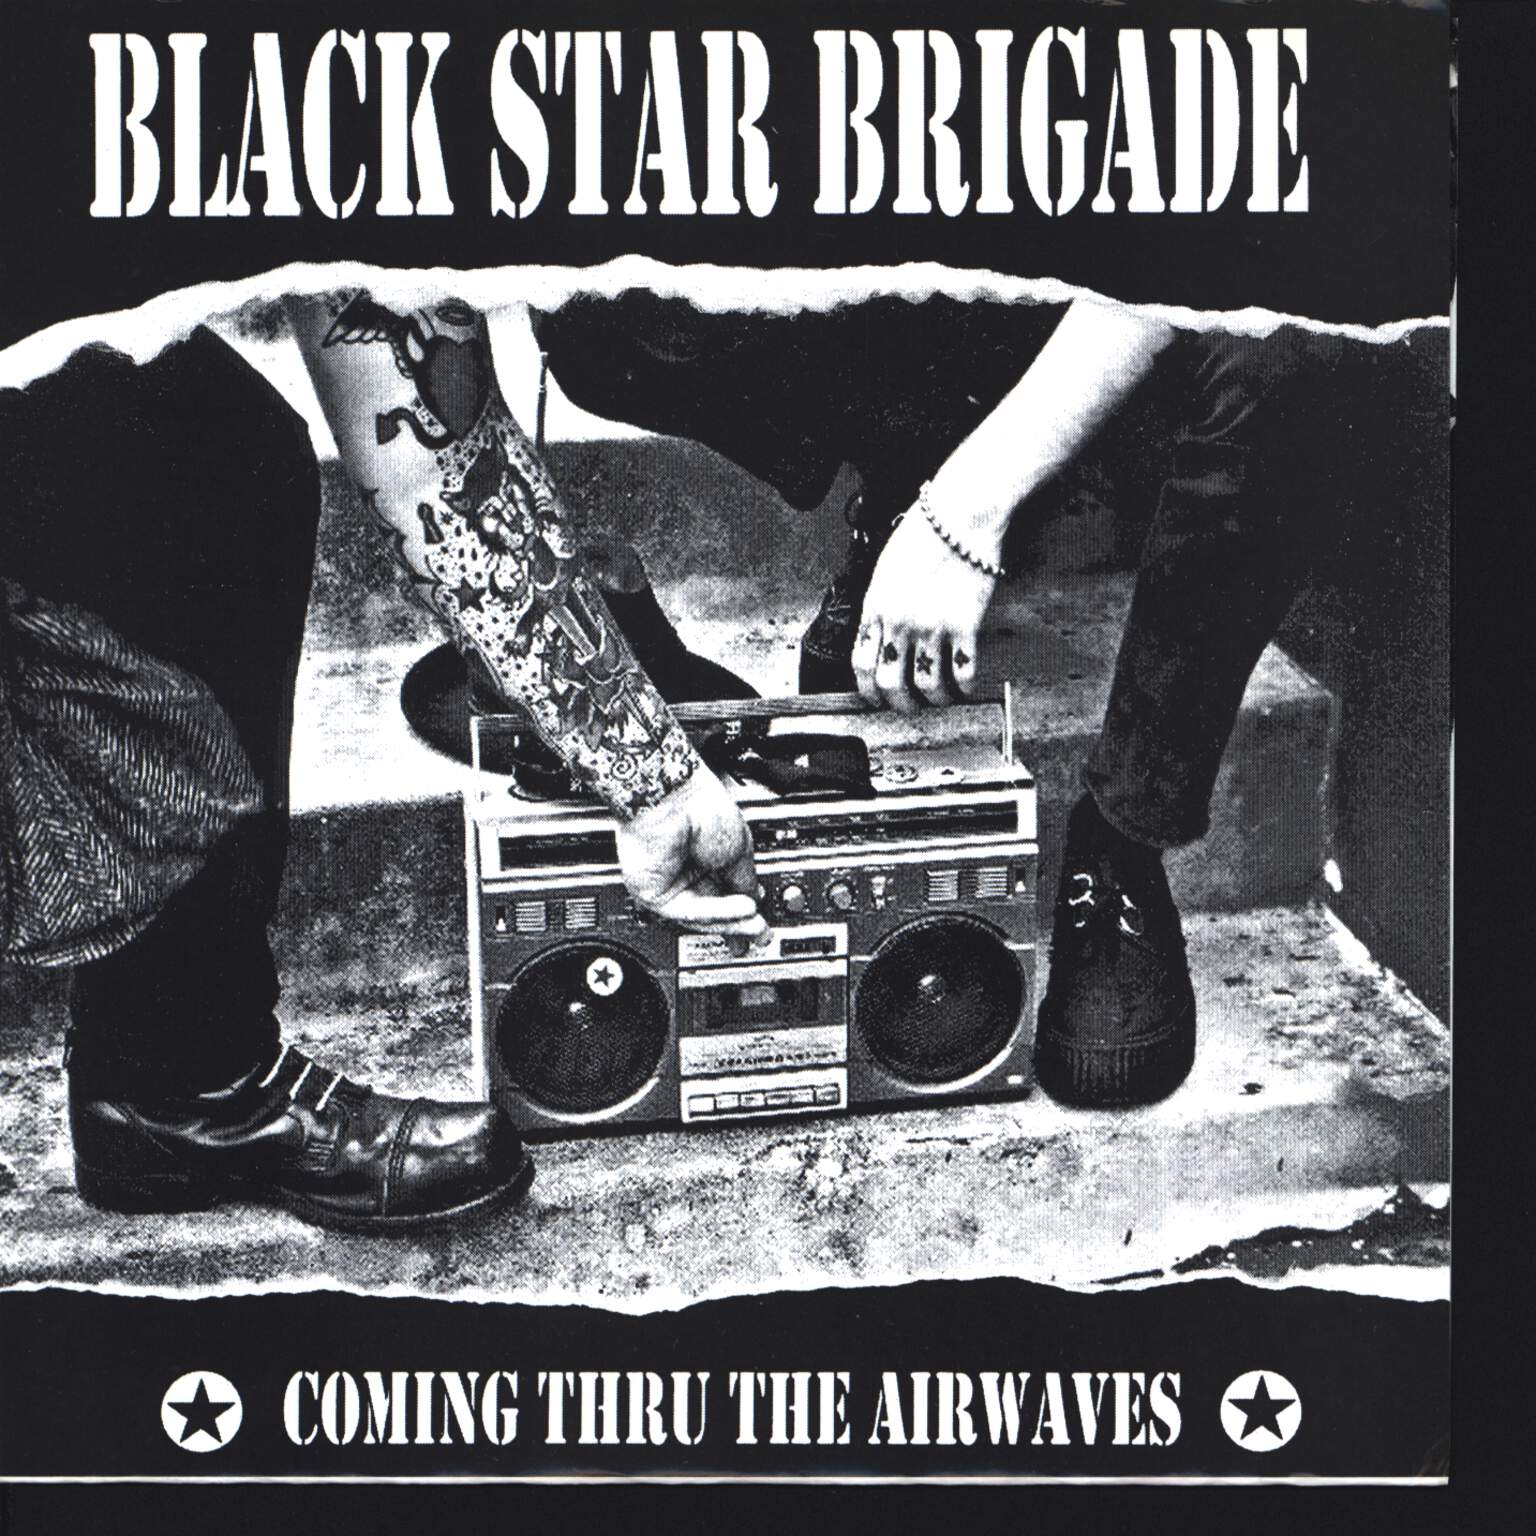 "Black Star Brigade: Coming Thru The Airwaves, 7"" Single (Vinyl)"